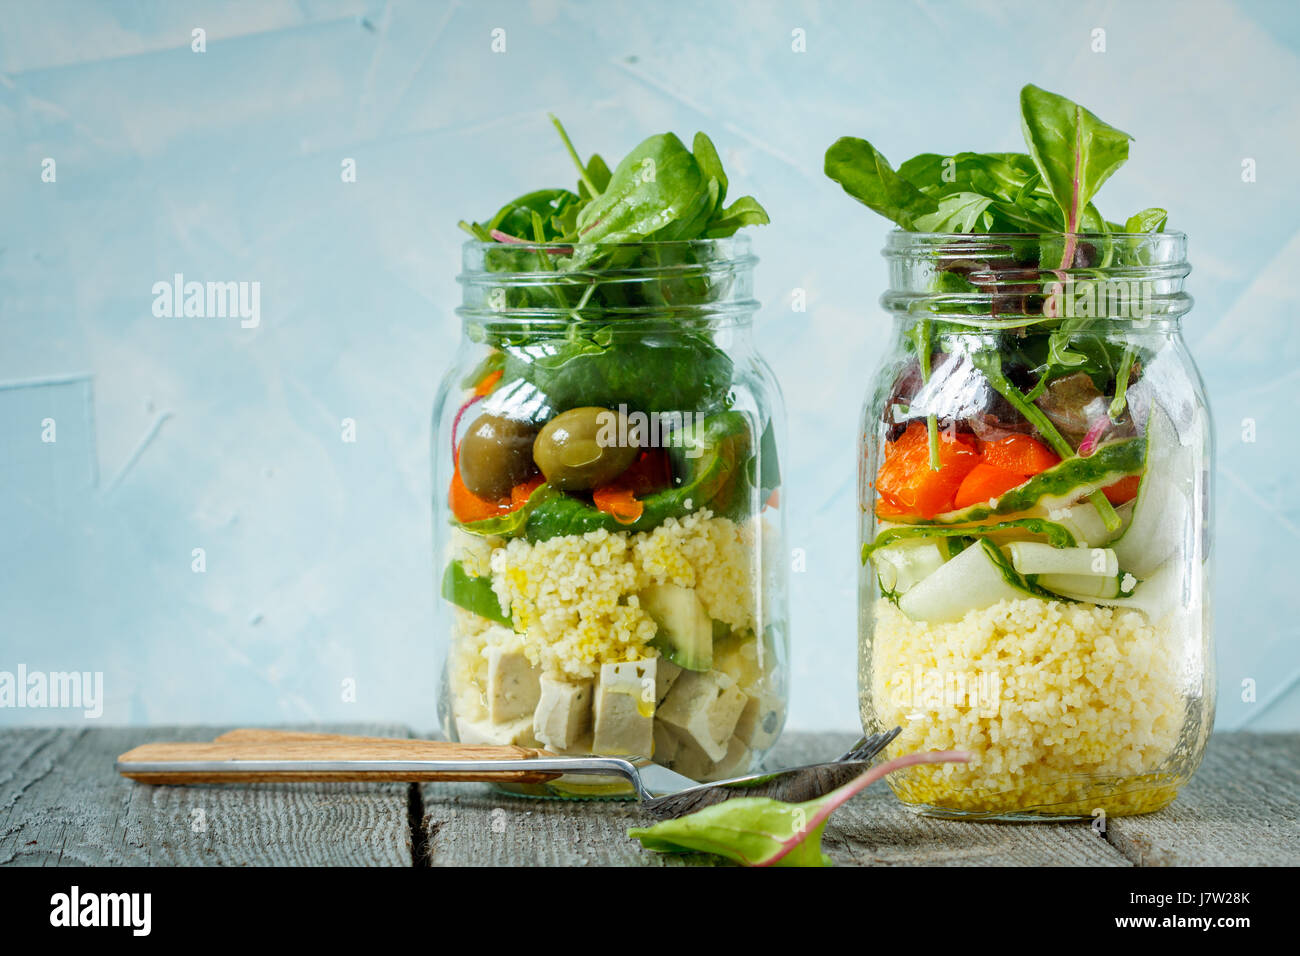 Colorful salad with couscous, tofu and vegetables in a jar. Love for a healthy vegan food concept - Stock Image